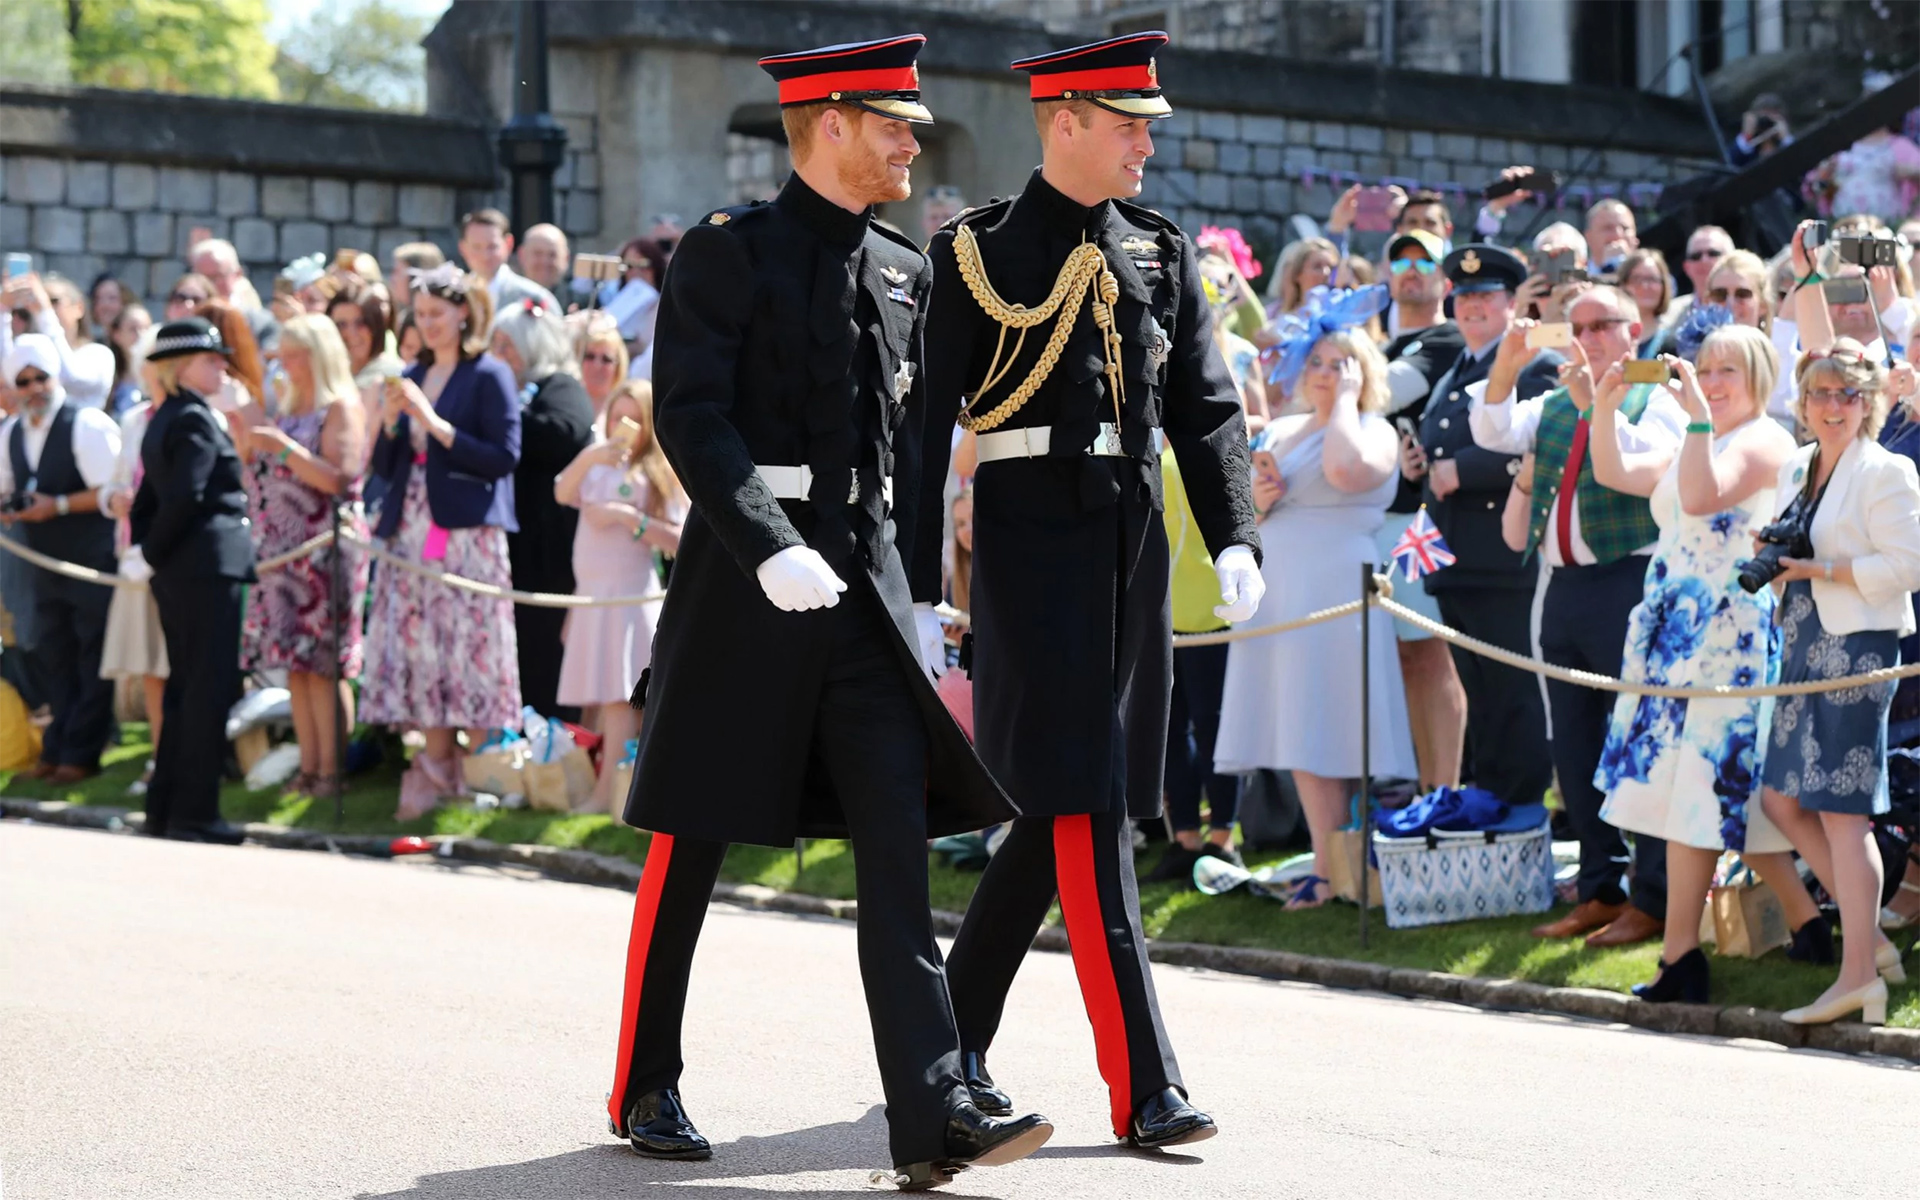 Prince Harry and best man Prince William arrive at St George's Chapel